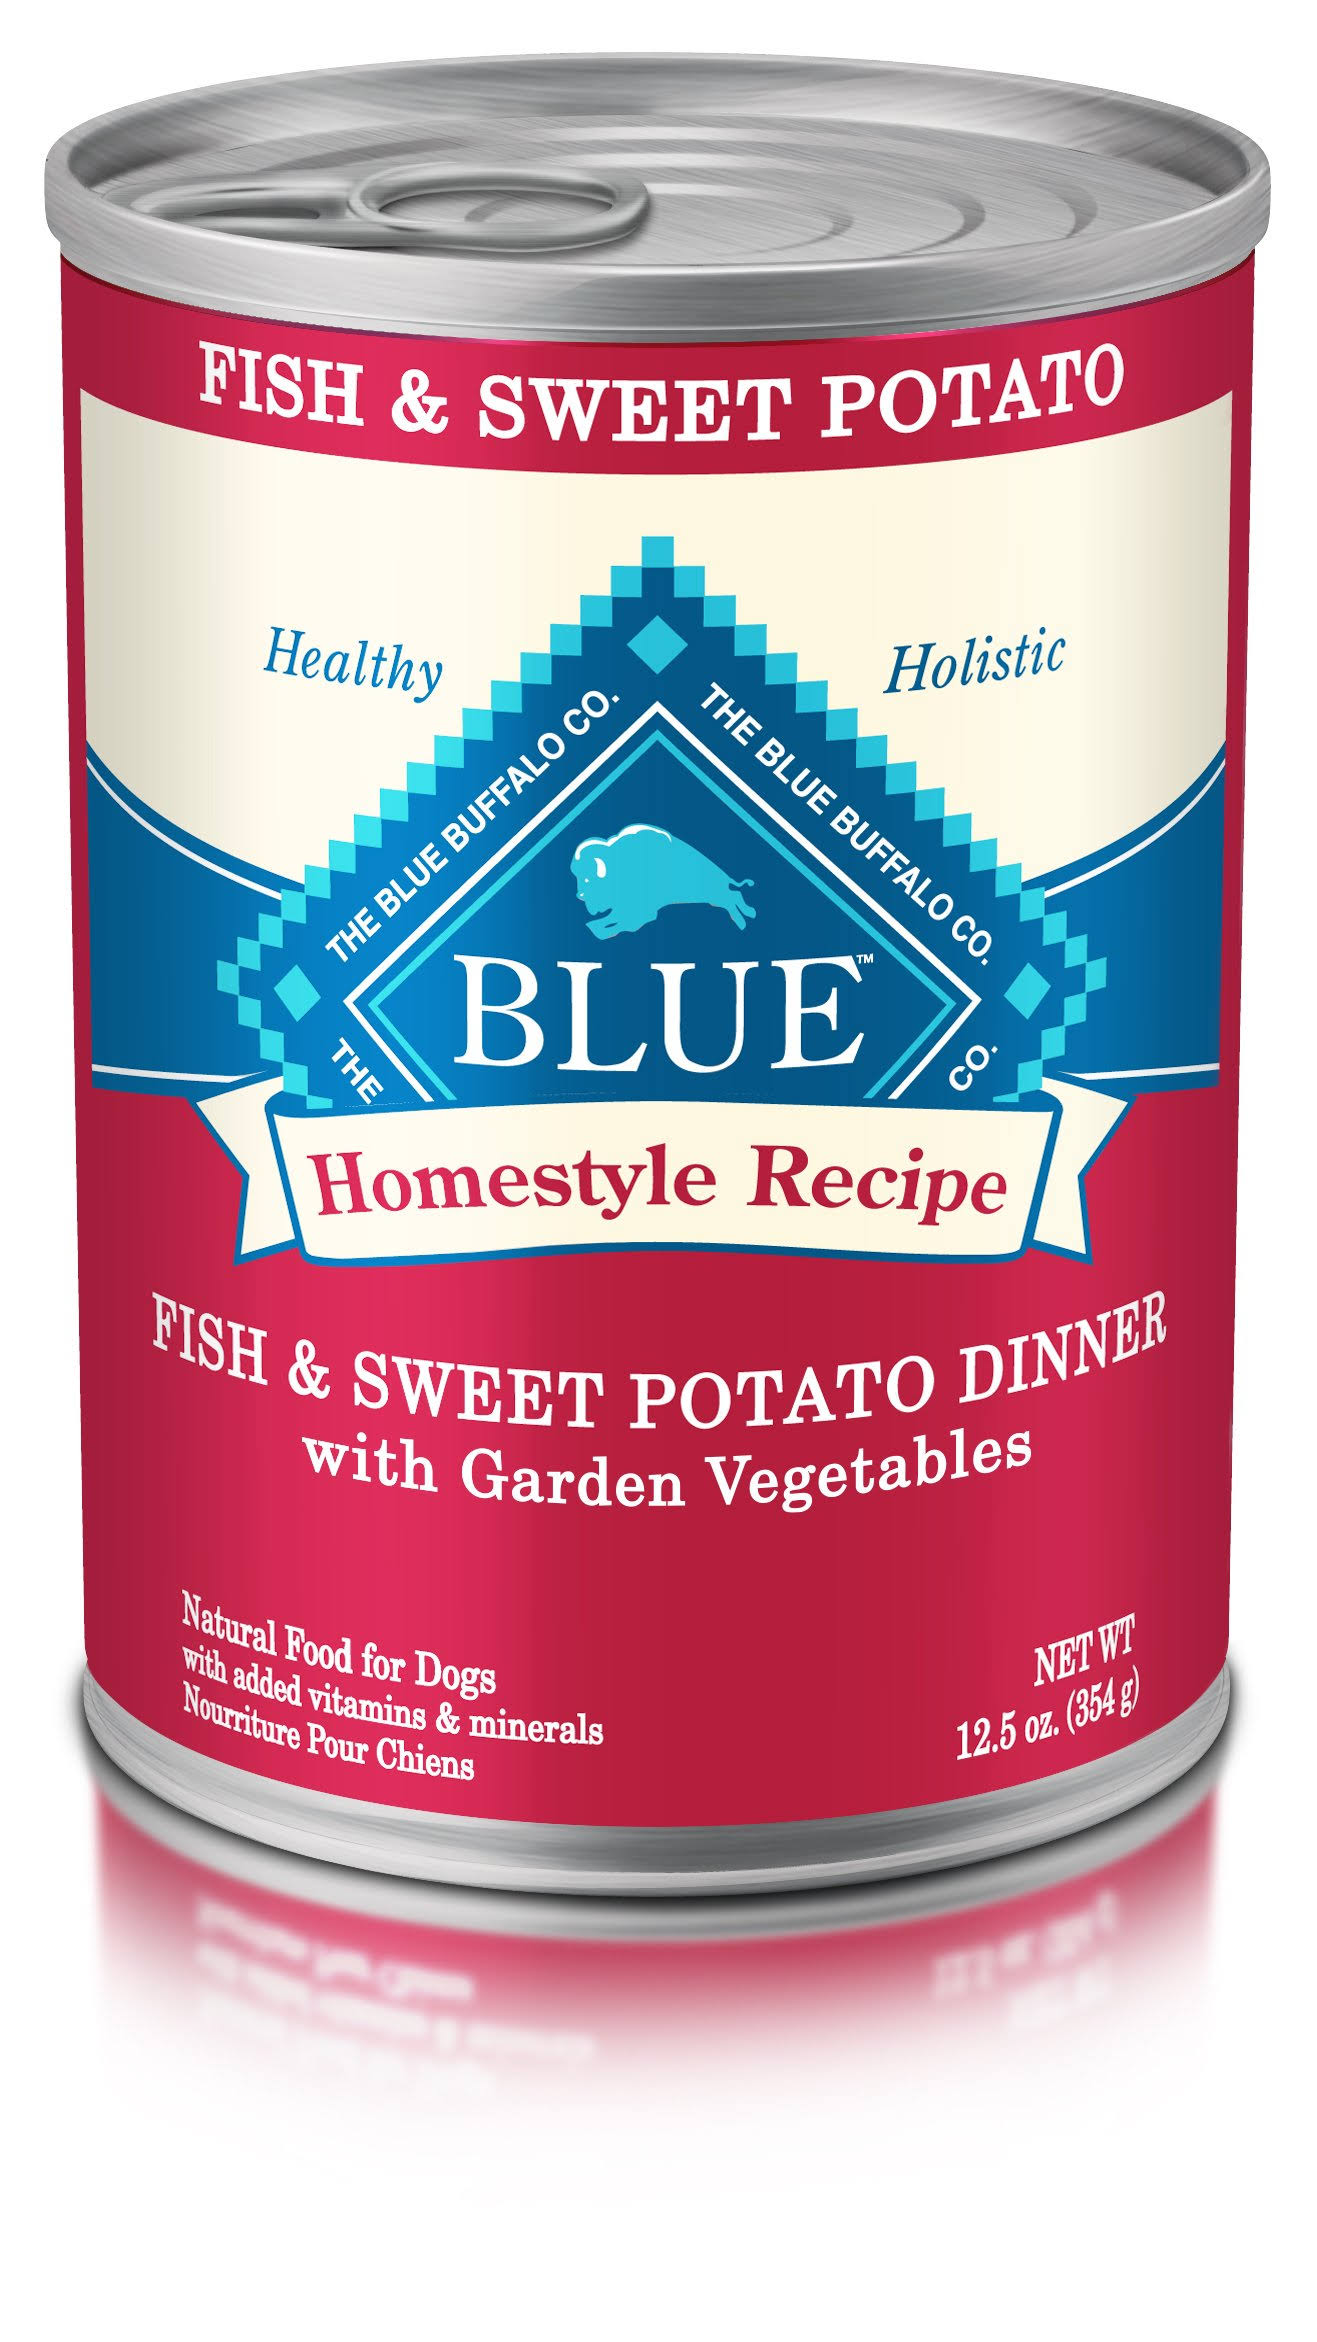 Blue Buffalo Homestyle Recipe Dog Food - Fish and Sweet Potato Dinner